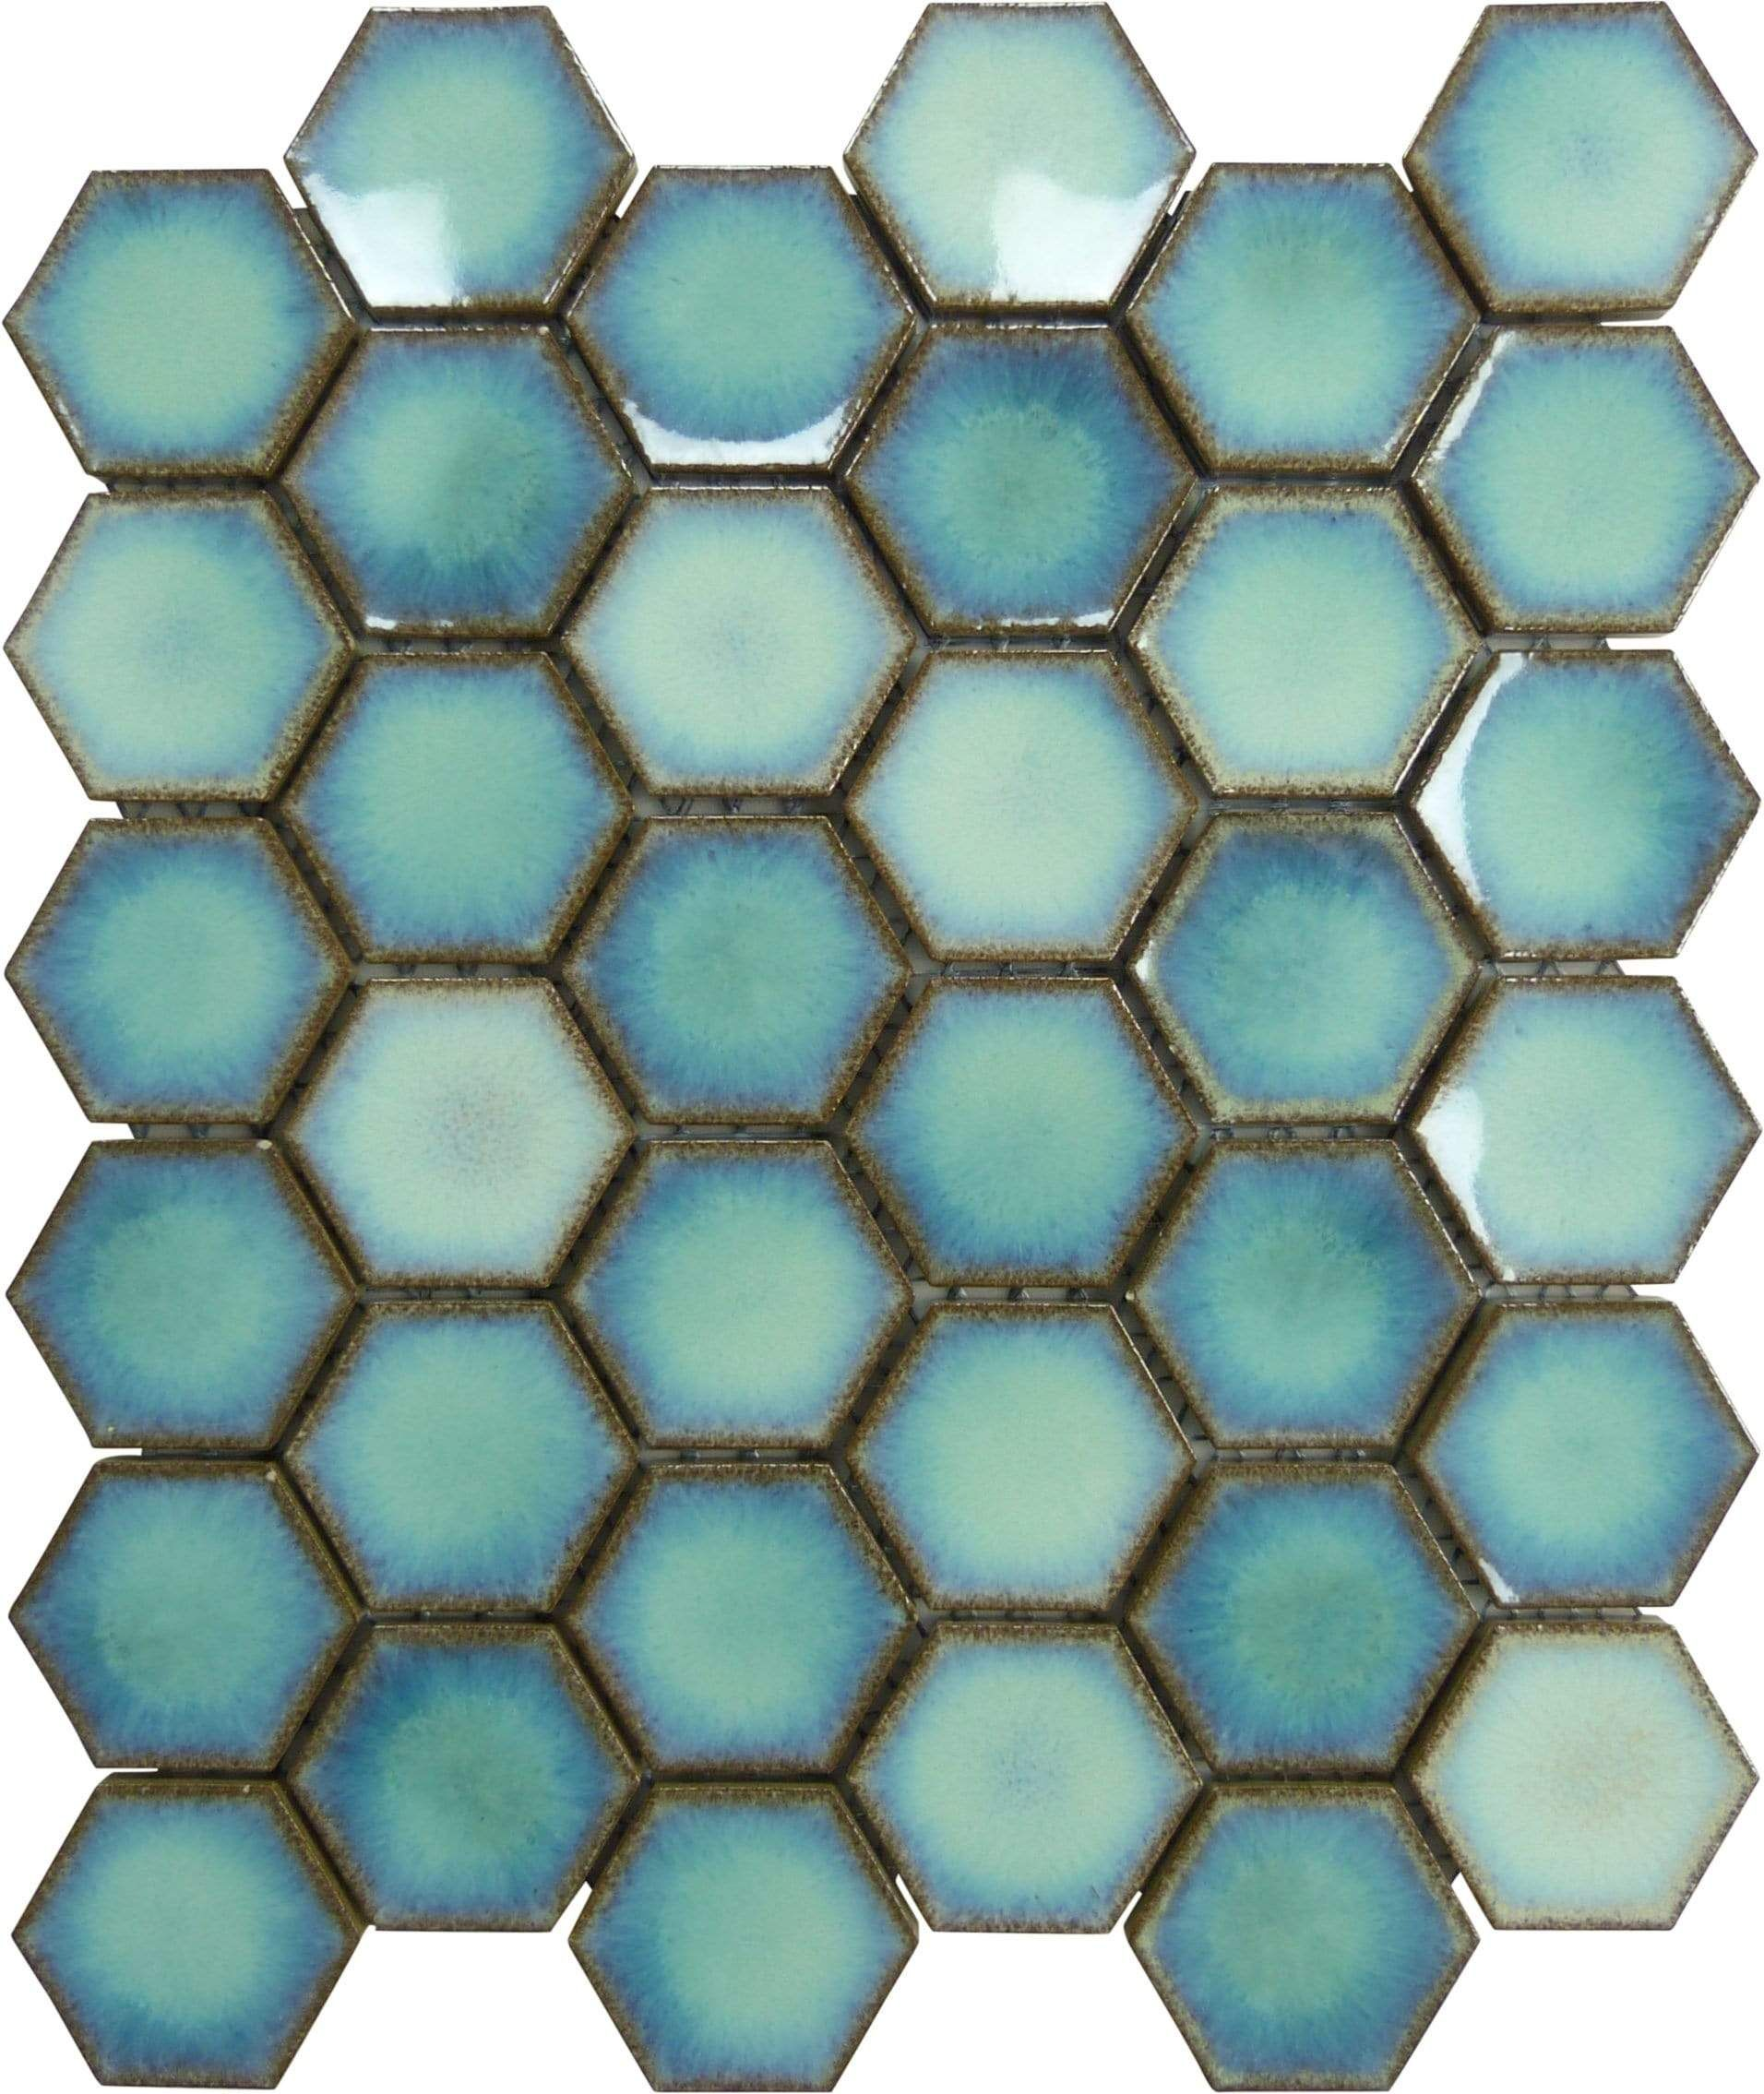 Cosmic Blue Hexagon Glossy Porcelain Tile In 2020 Porcelain Tile Tile Bathroom Shower Tile